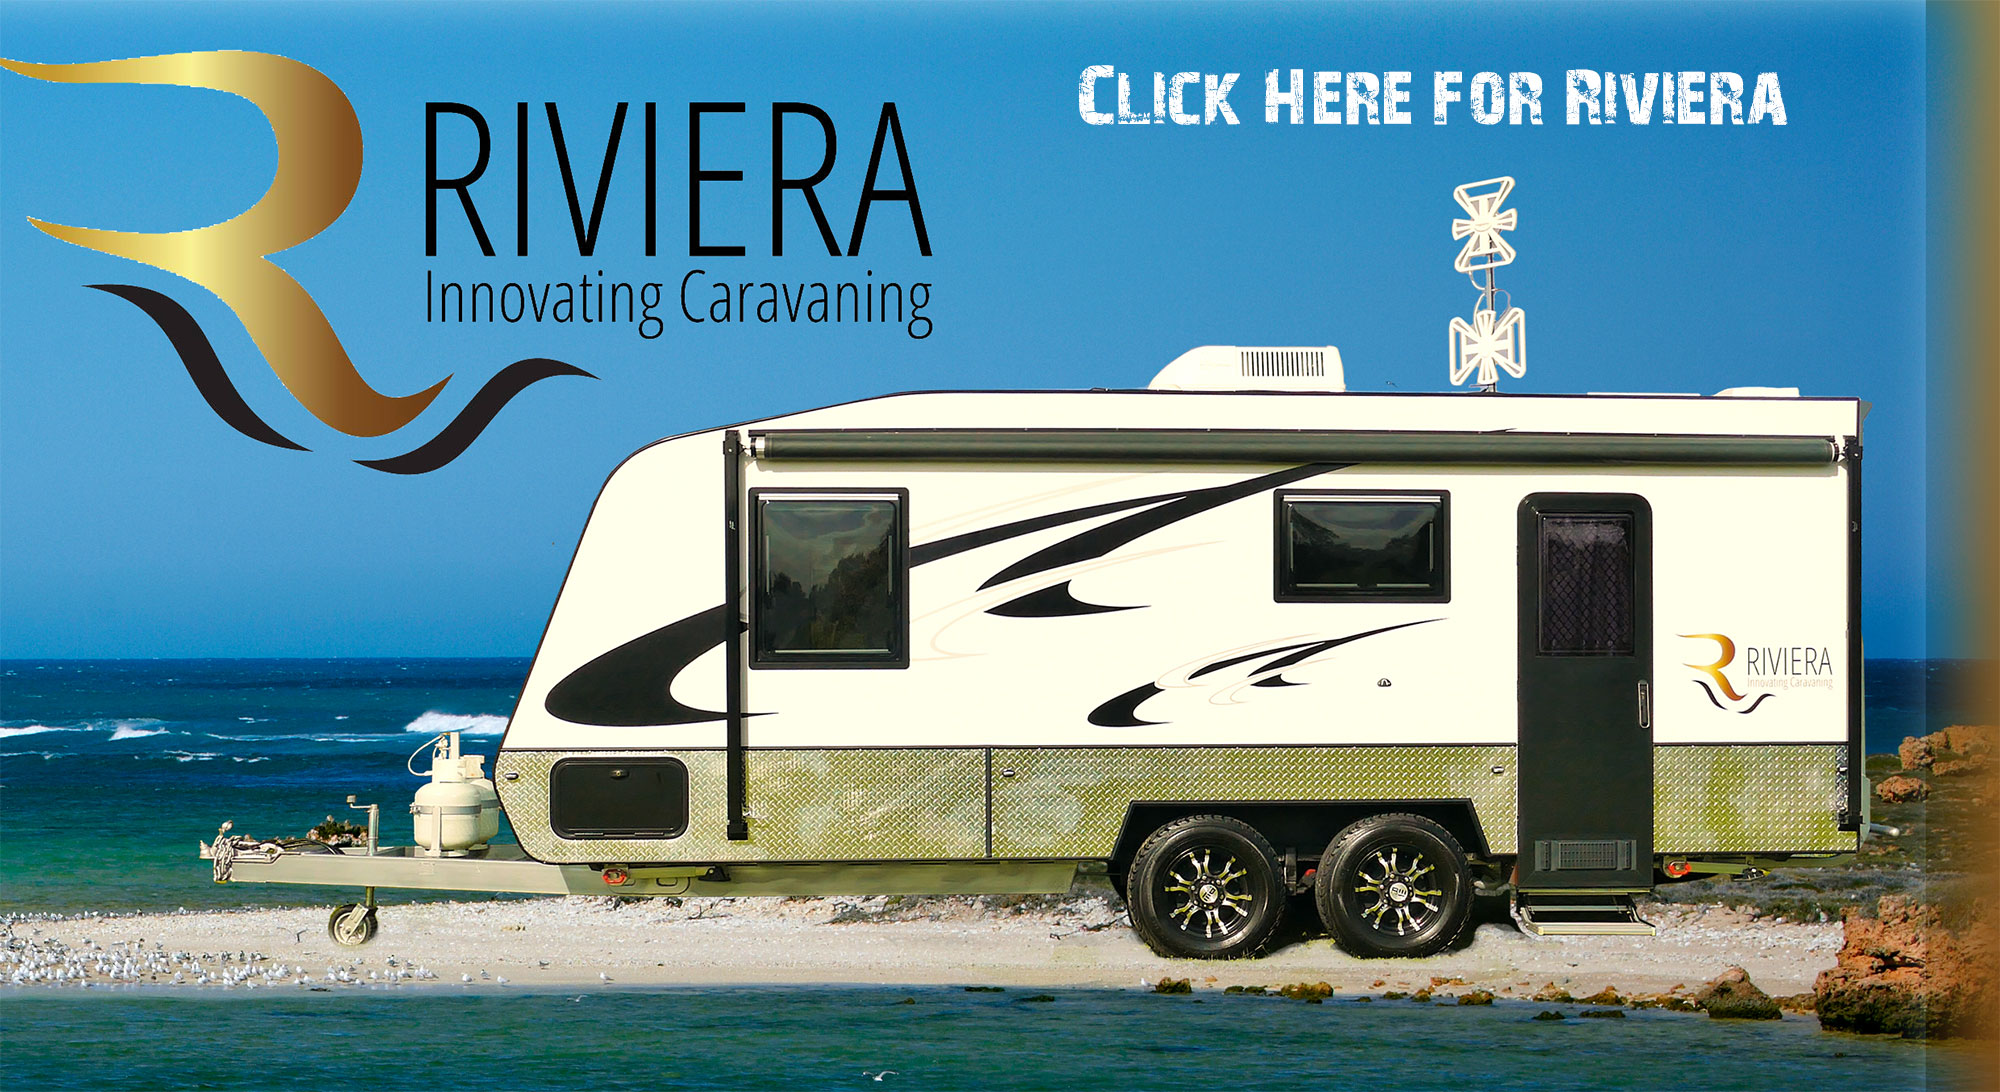 New Caravans from Riviera